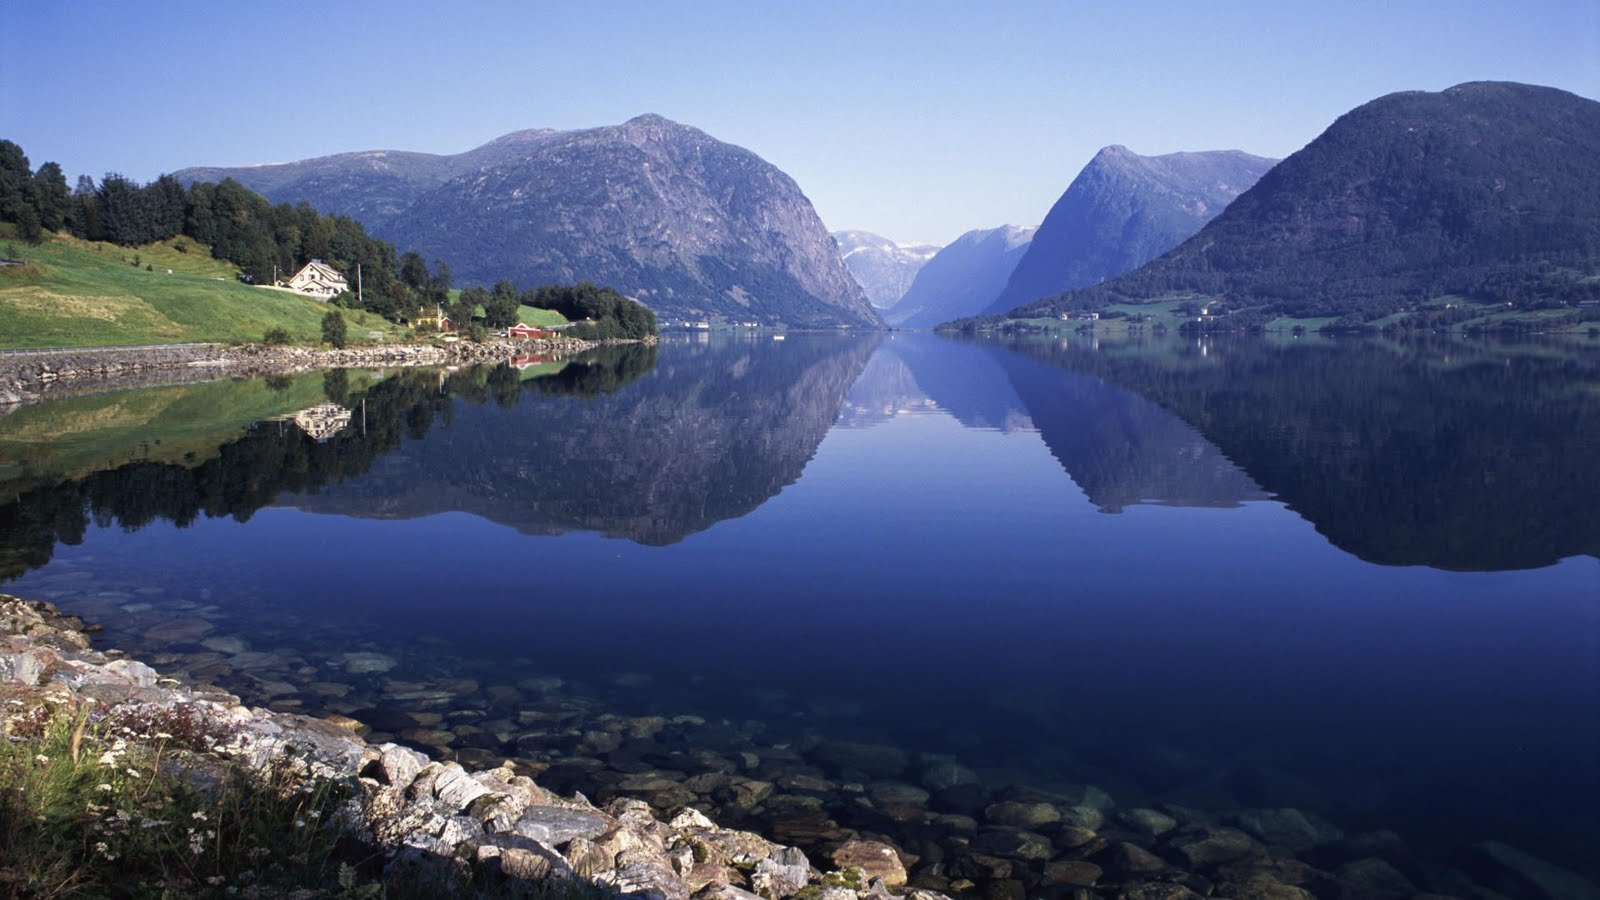 Tracy Gibson: Norway Hd